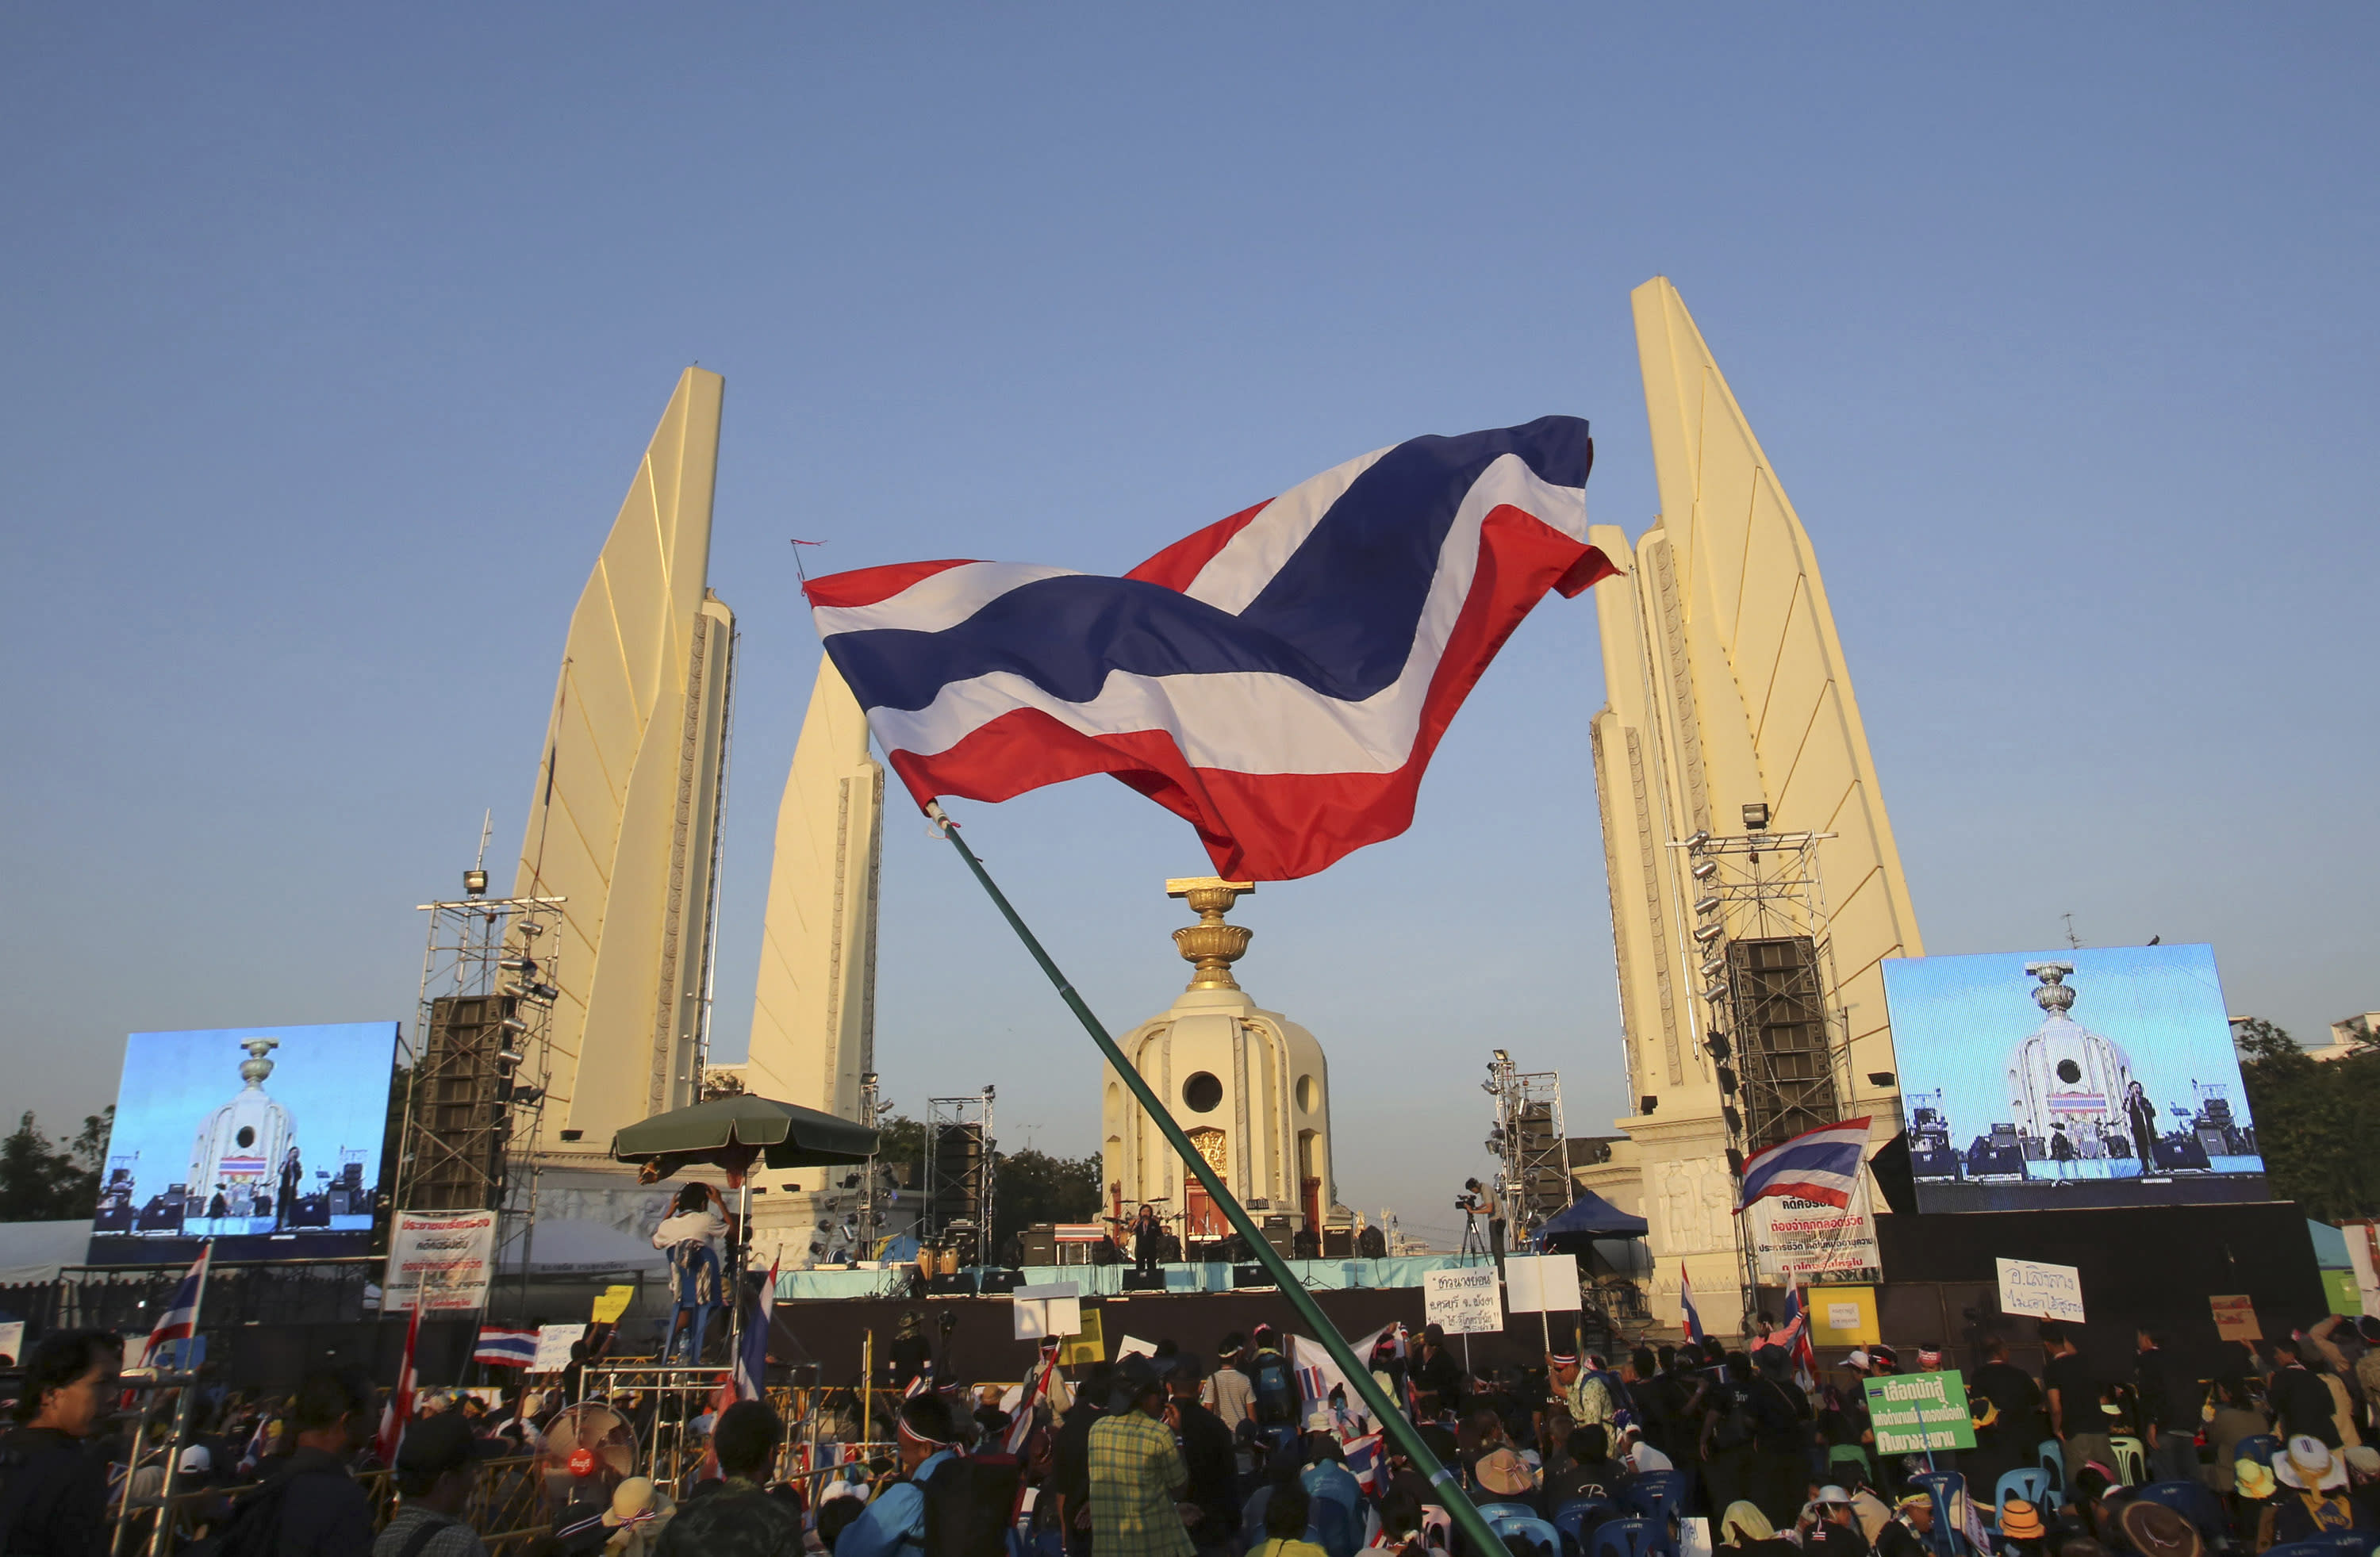 Anti-government protesters gather in front of the Democracy Monument during a rally in Bangkok, Thailand, Sunday, Dec. 1, 2013. 2013. Aggressive political protests in the Thai capital turned violent late Saturday with at least one man killed and several wounded by gunshots in street fighting between supporters and opponents of Prime Minister Yingluck Shinawatra. (AP Phoito/Sakchai Lalit)